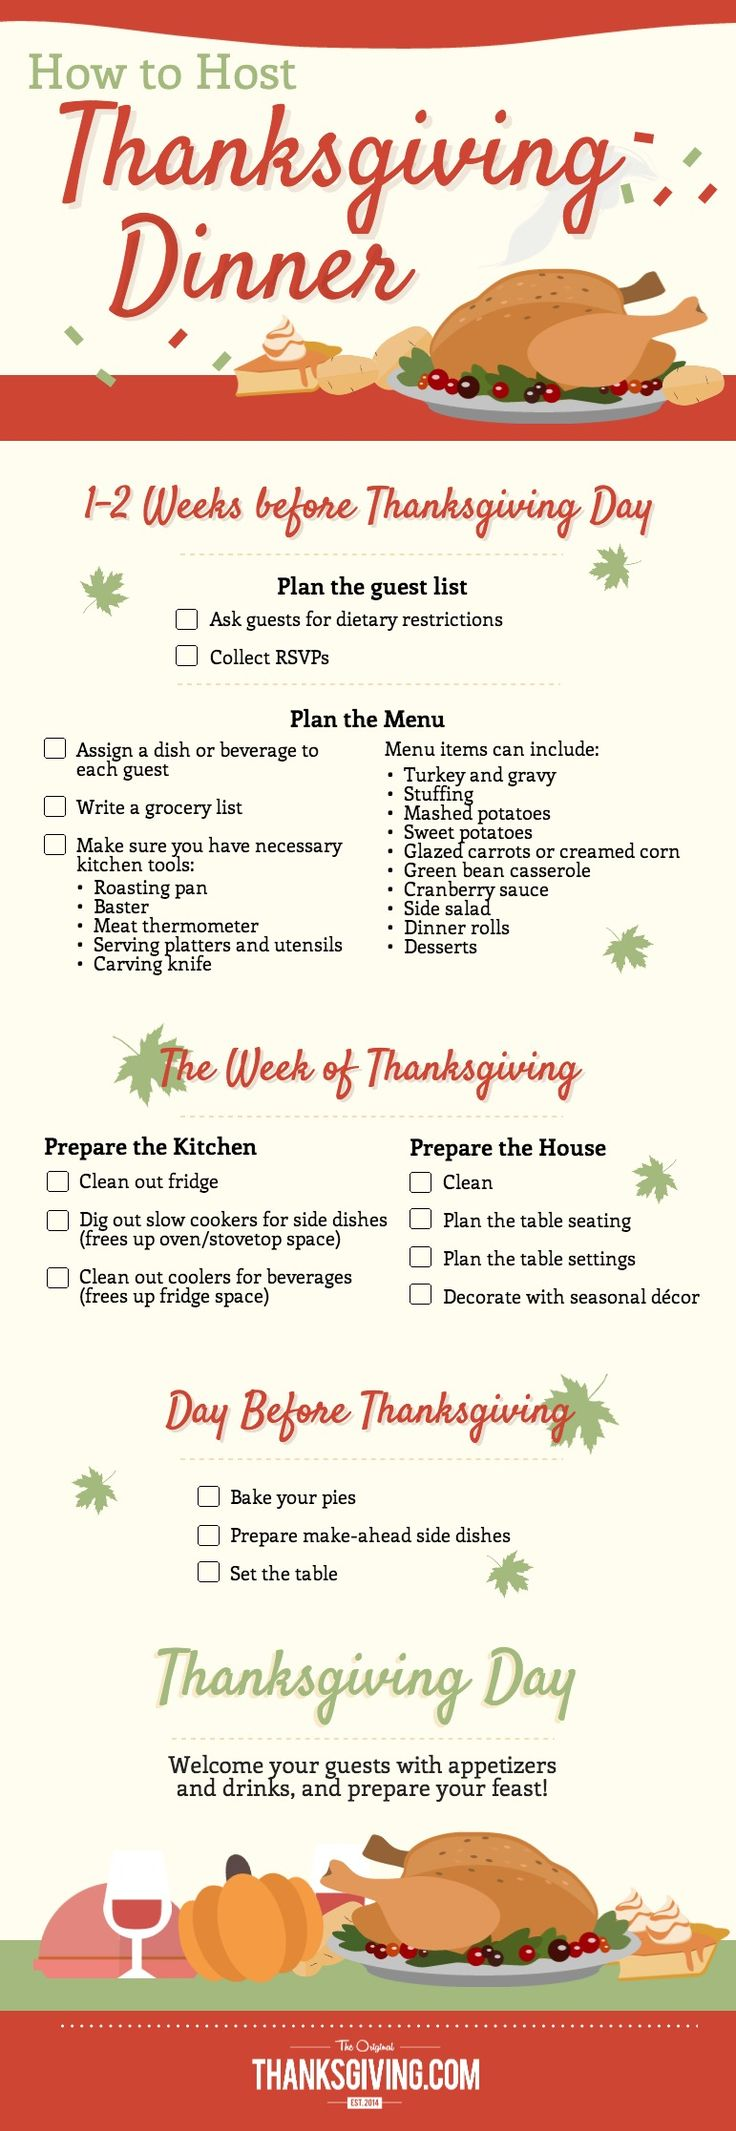 How to plan your Thanksgiving celebration with a helpful infographic showing the proper timeline.